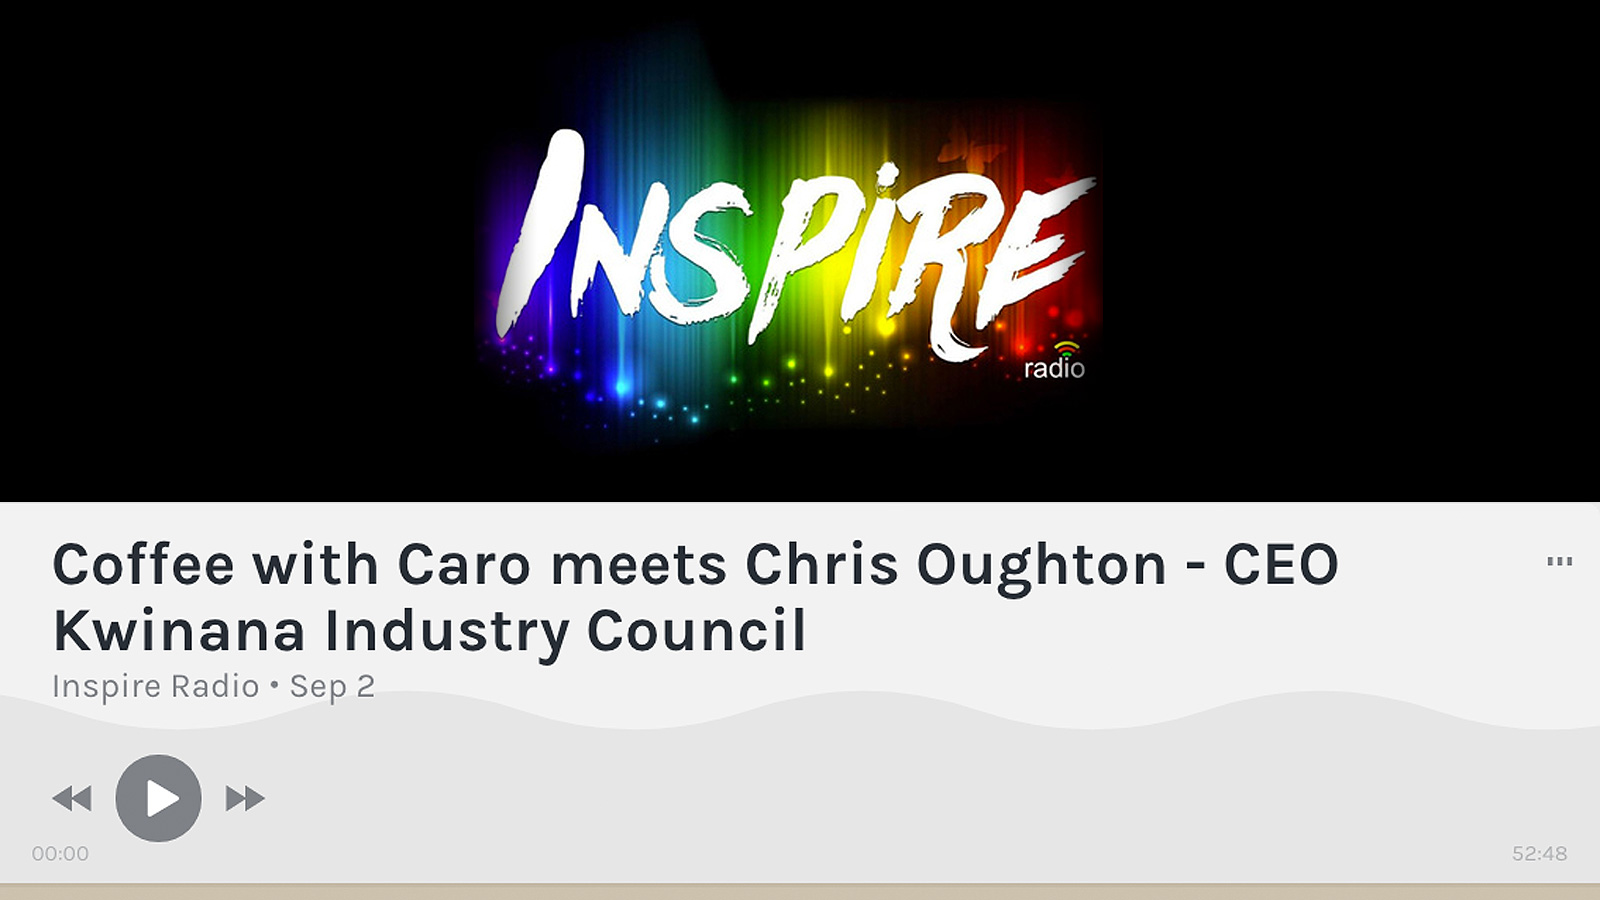 Coffee with Caro meets Chris Oughton - CEO Kwinana Industry Council